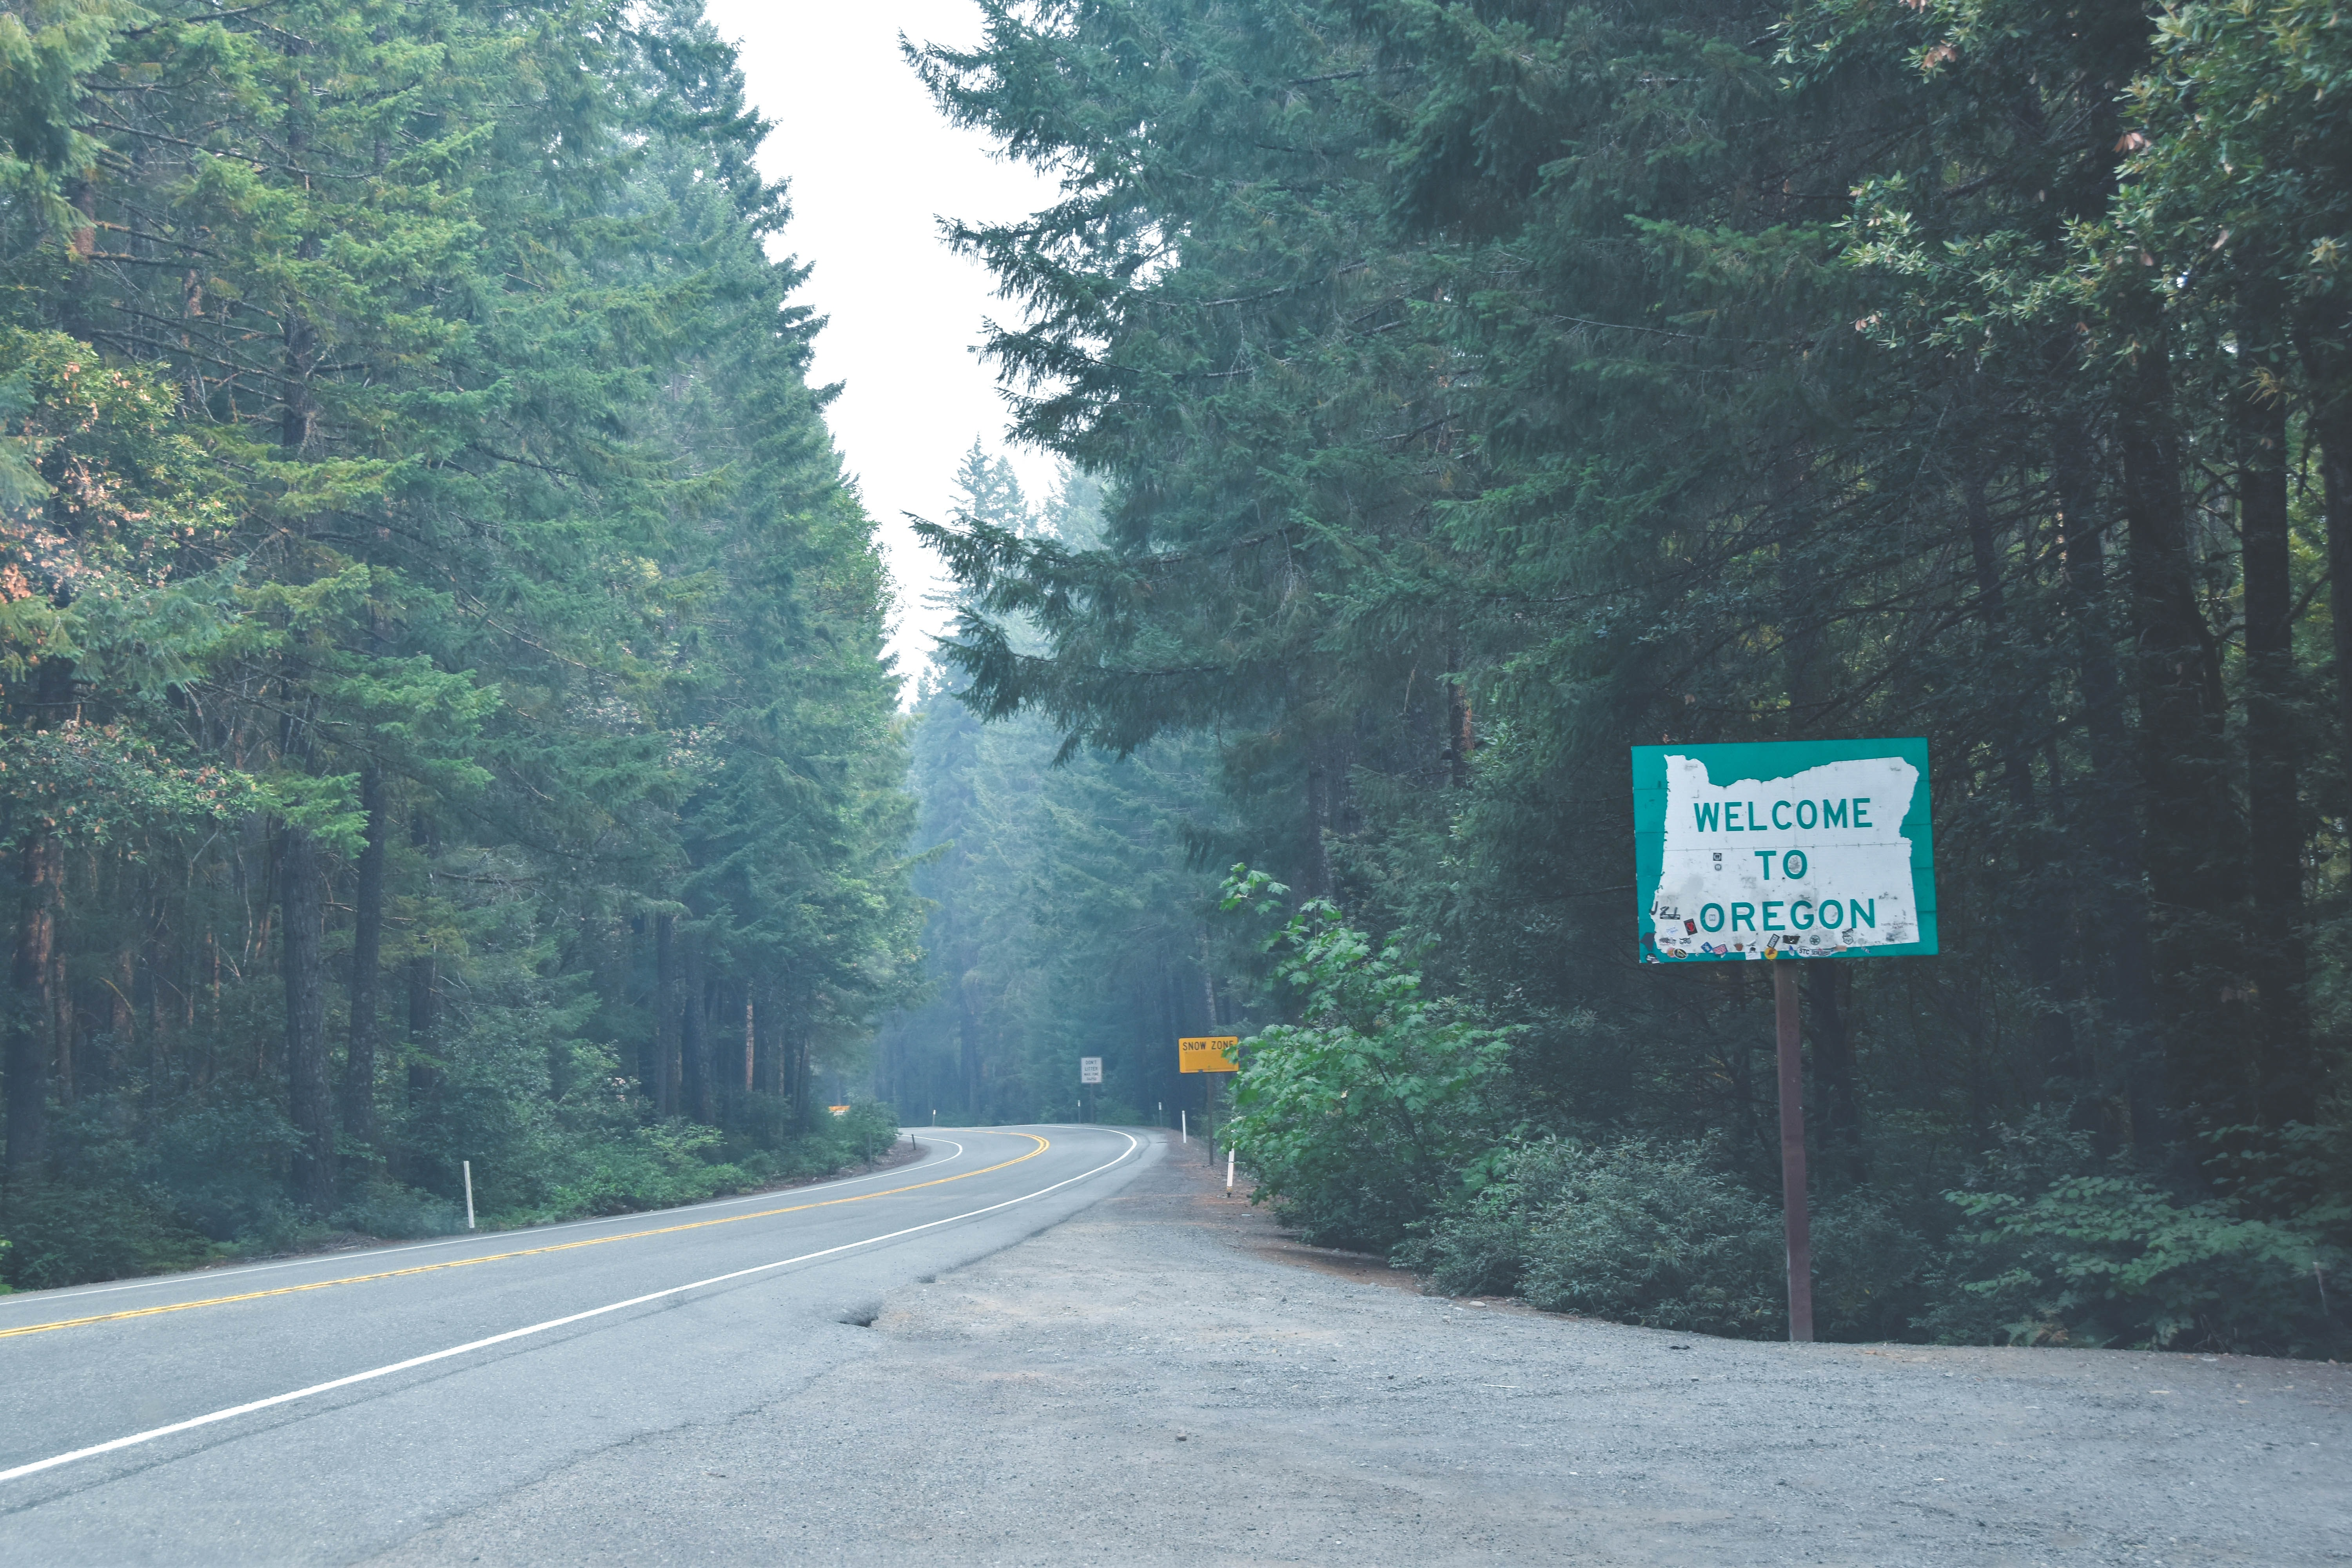 welcome to Oregon signage near trees